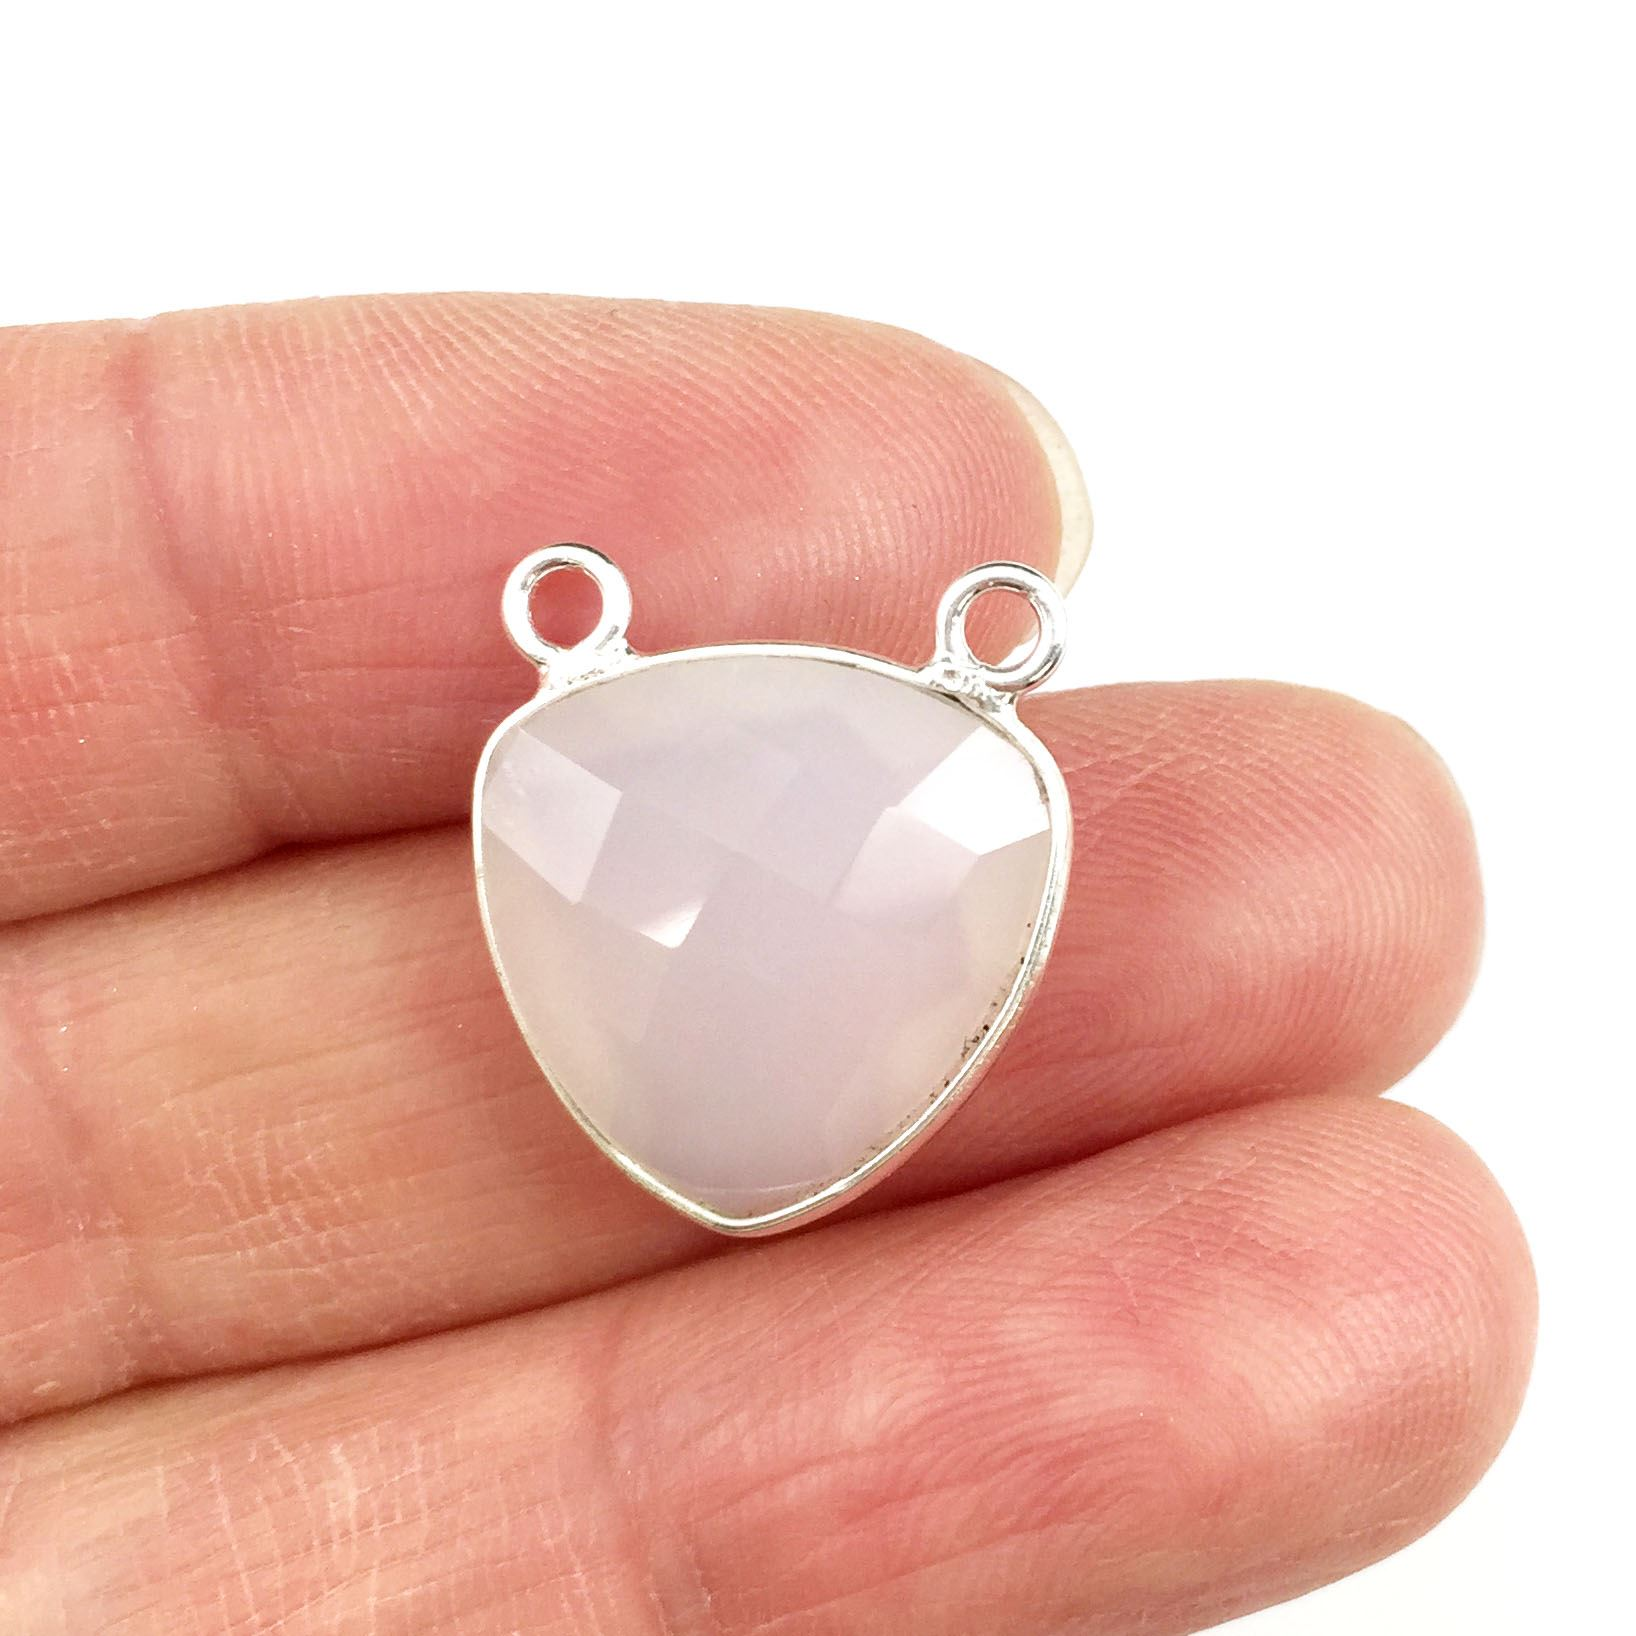 Bezel Gemstone Connector Pendant - White Chalcedony- Sterling Silver - Small Trillion Shaped Faceted - 15mm - 1 piece